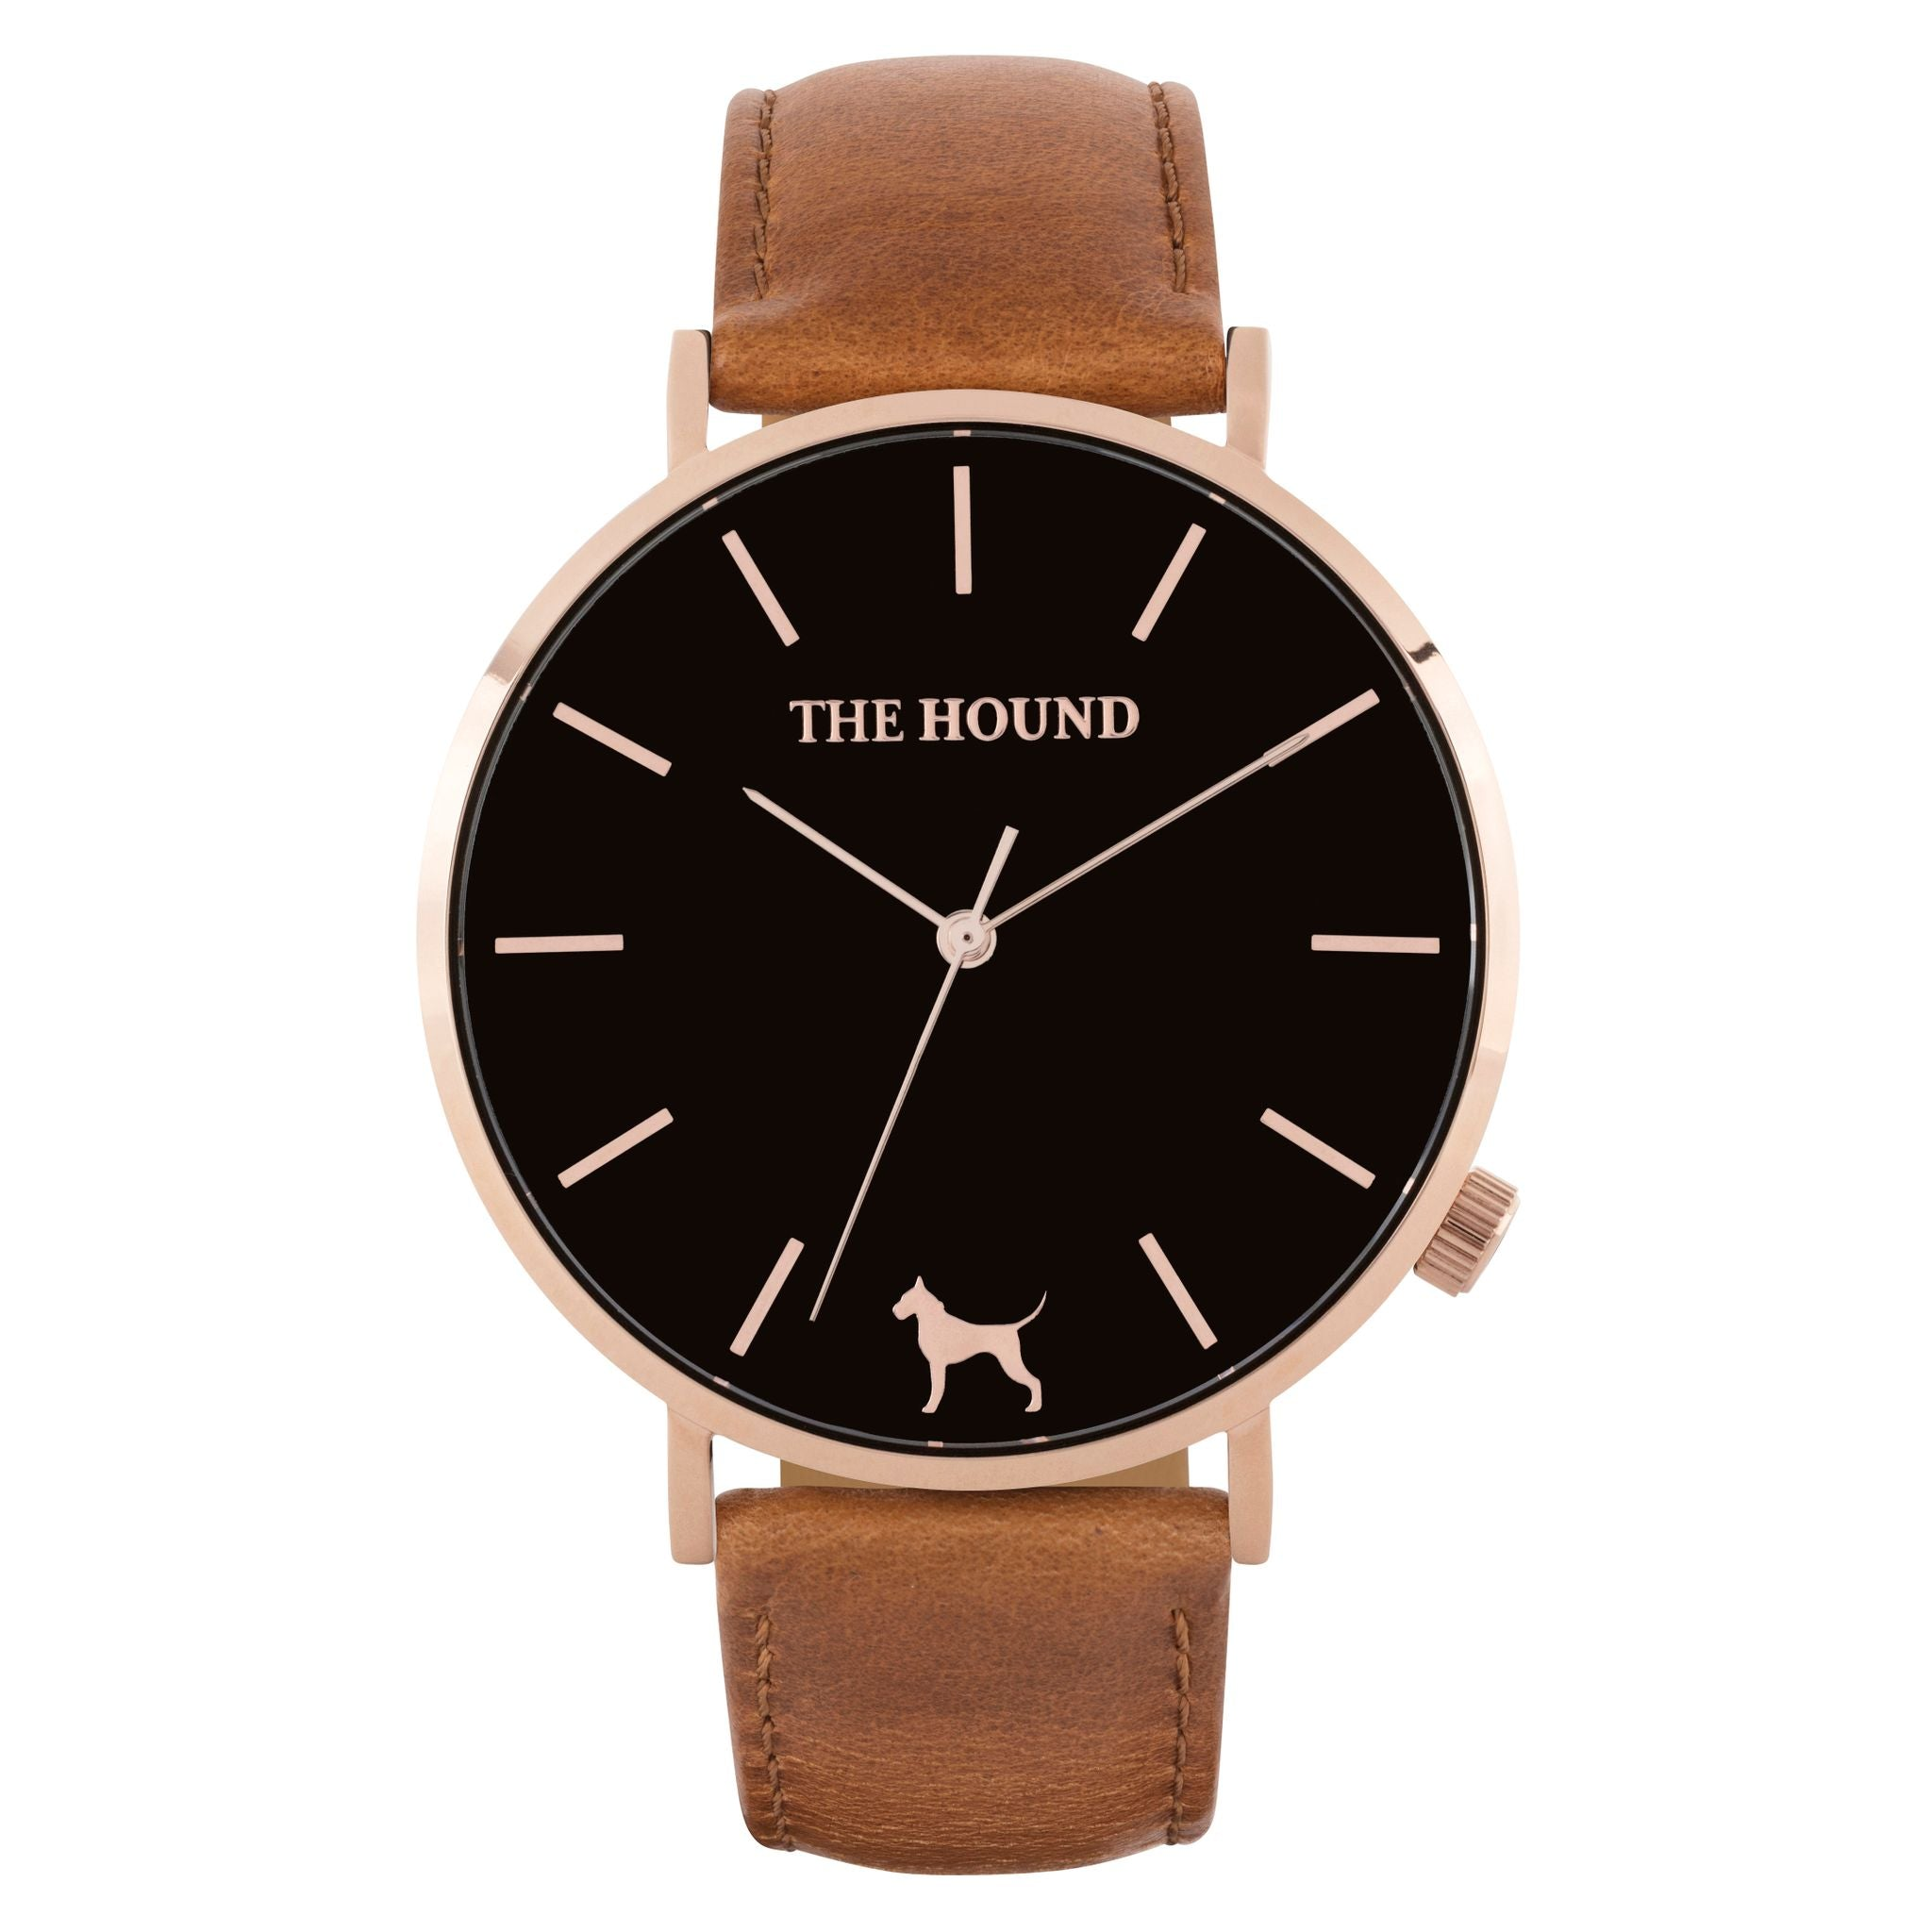 Rose gold & black face watch with tan leather